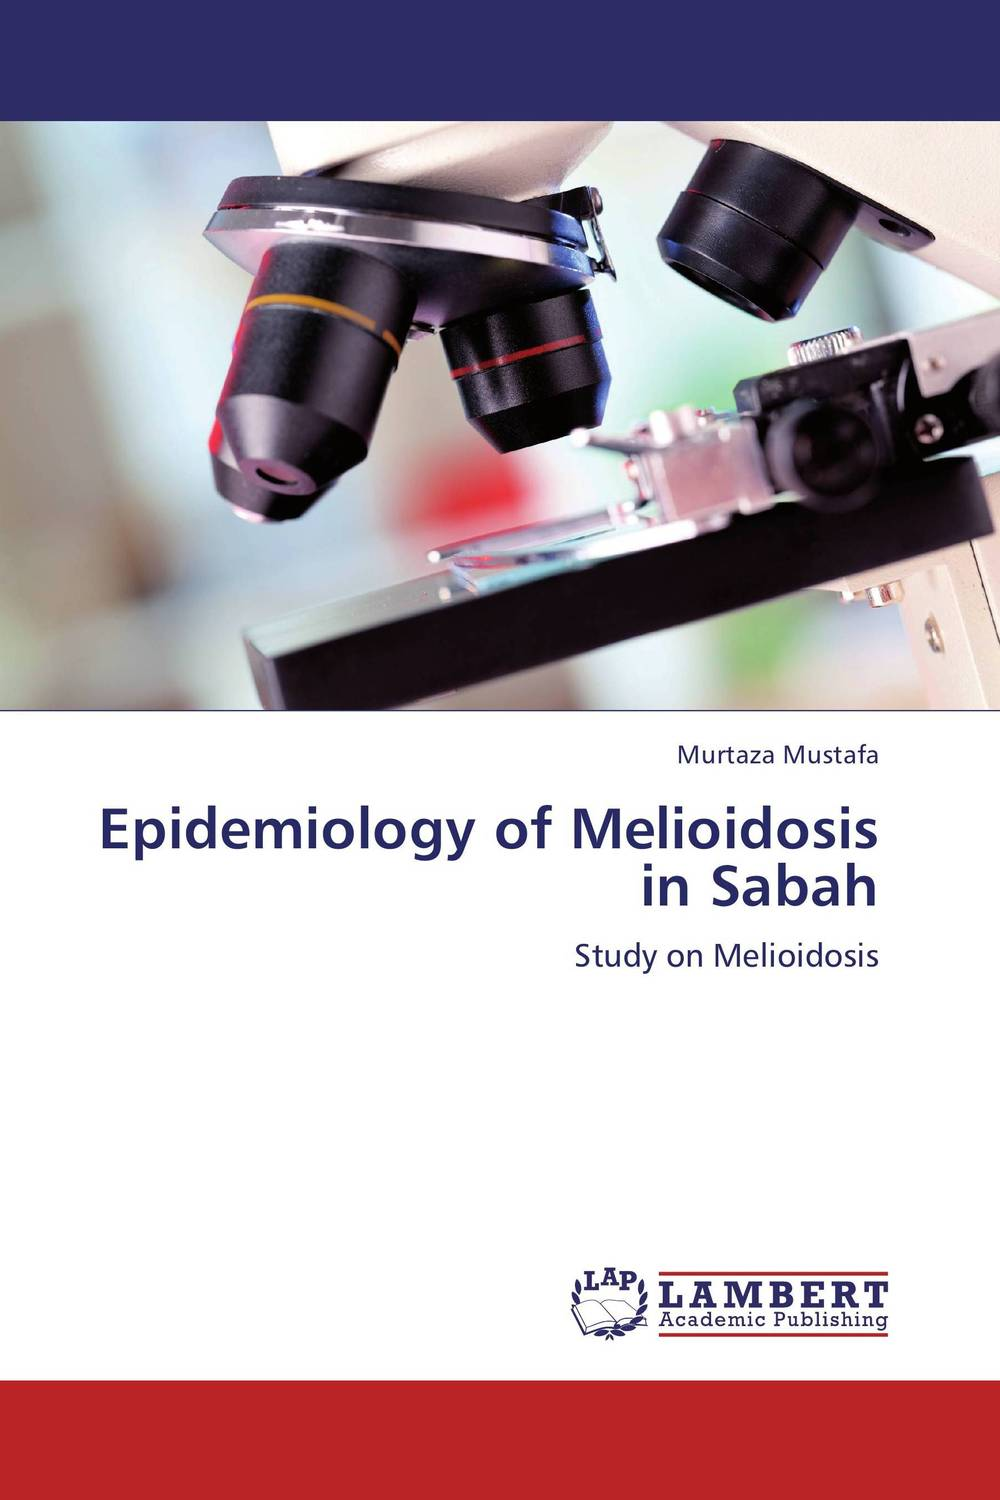 Epidemiology of Melioidosis in Sabah epidemiology of melioidosis in sabah